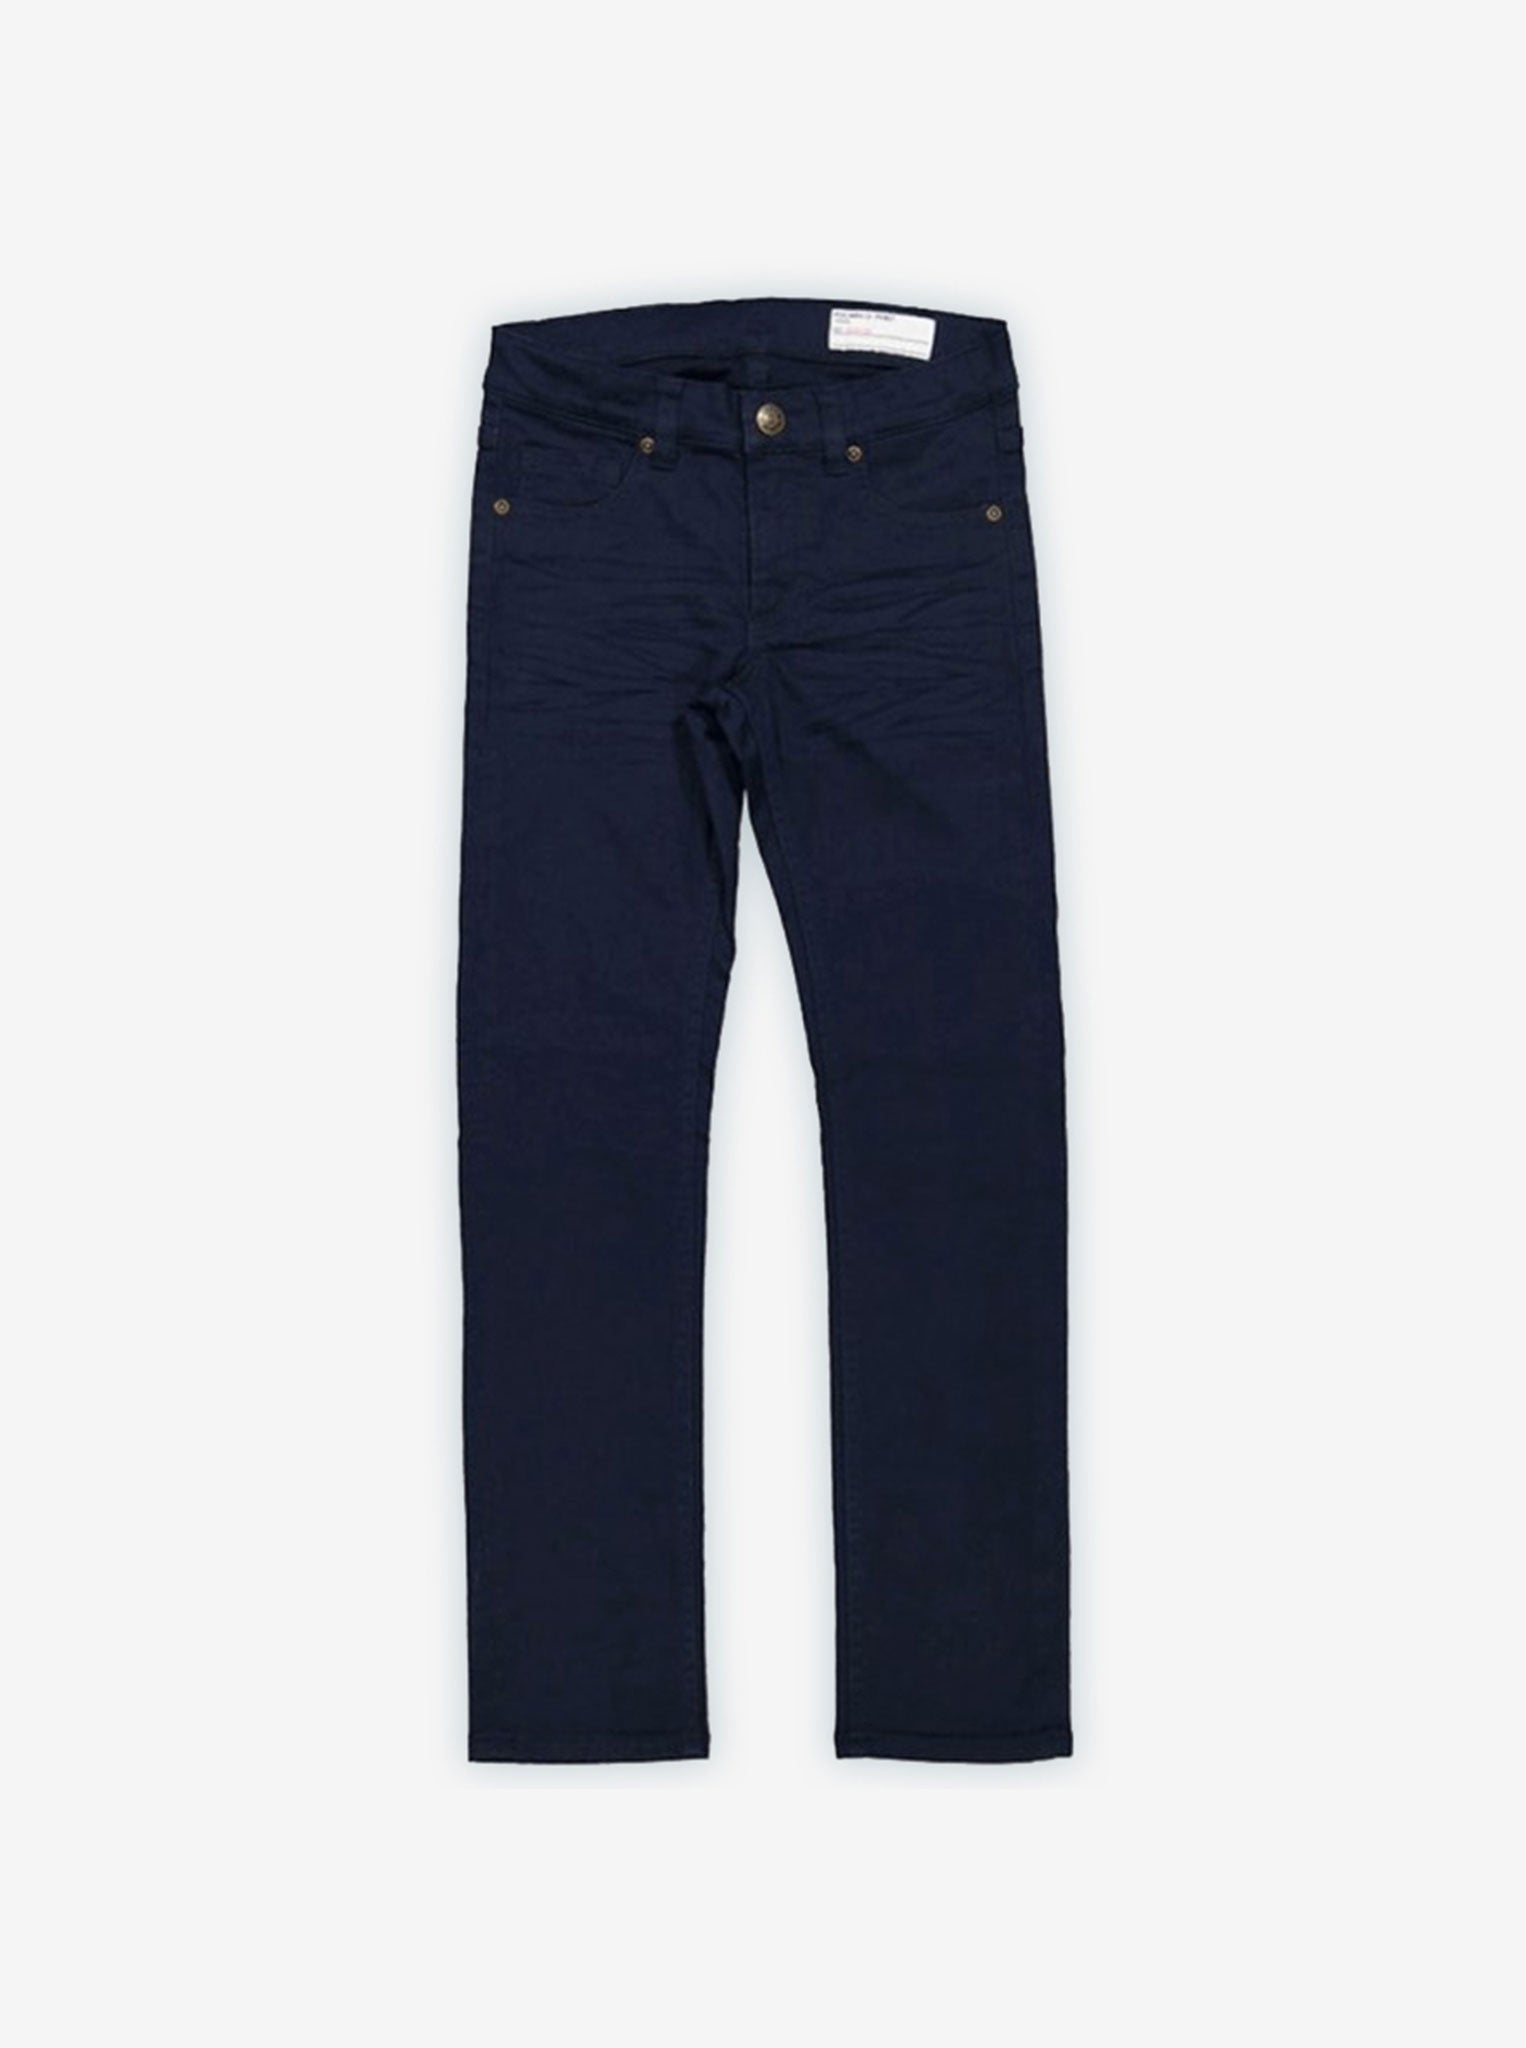 Indigo Slim Fit Kids Jeans